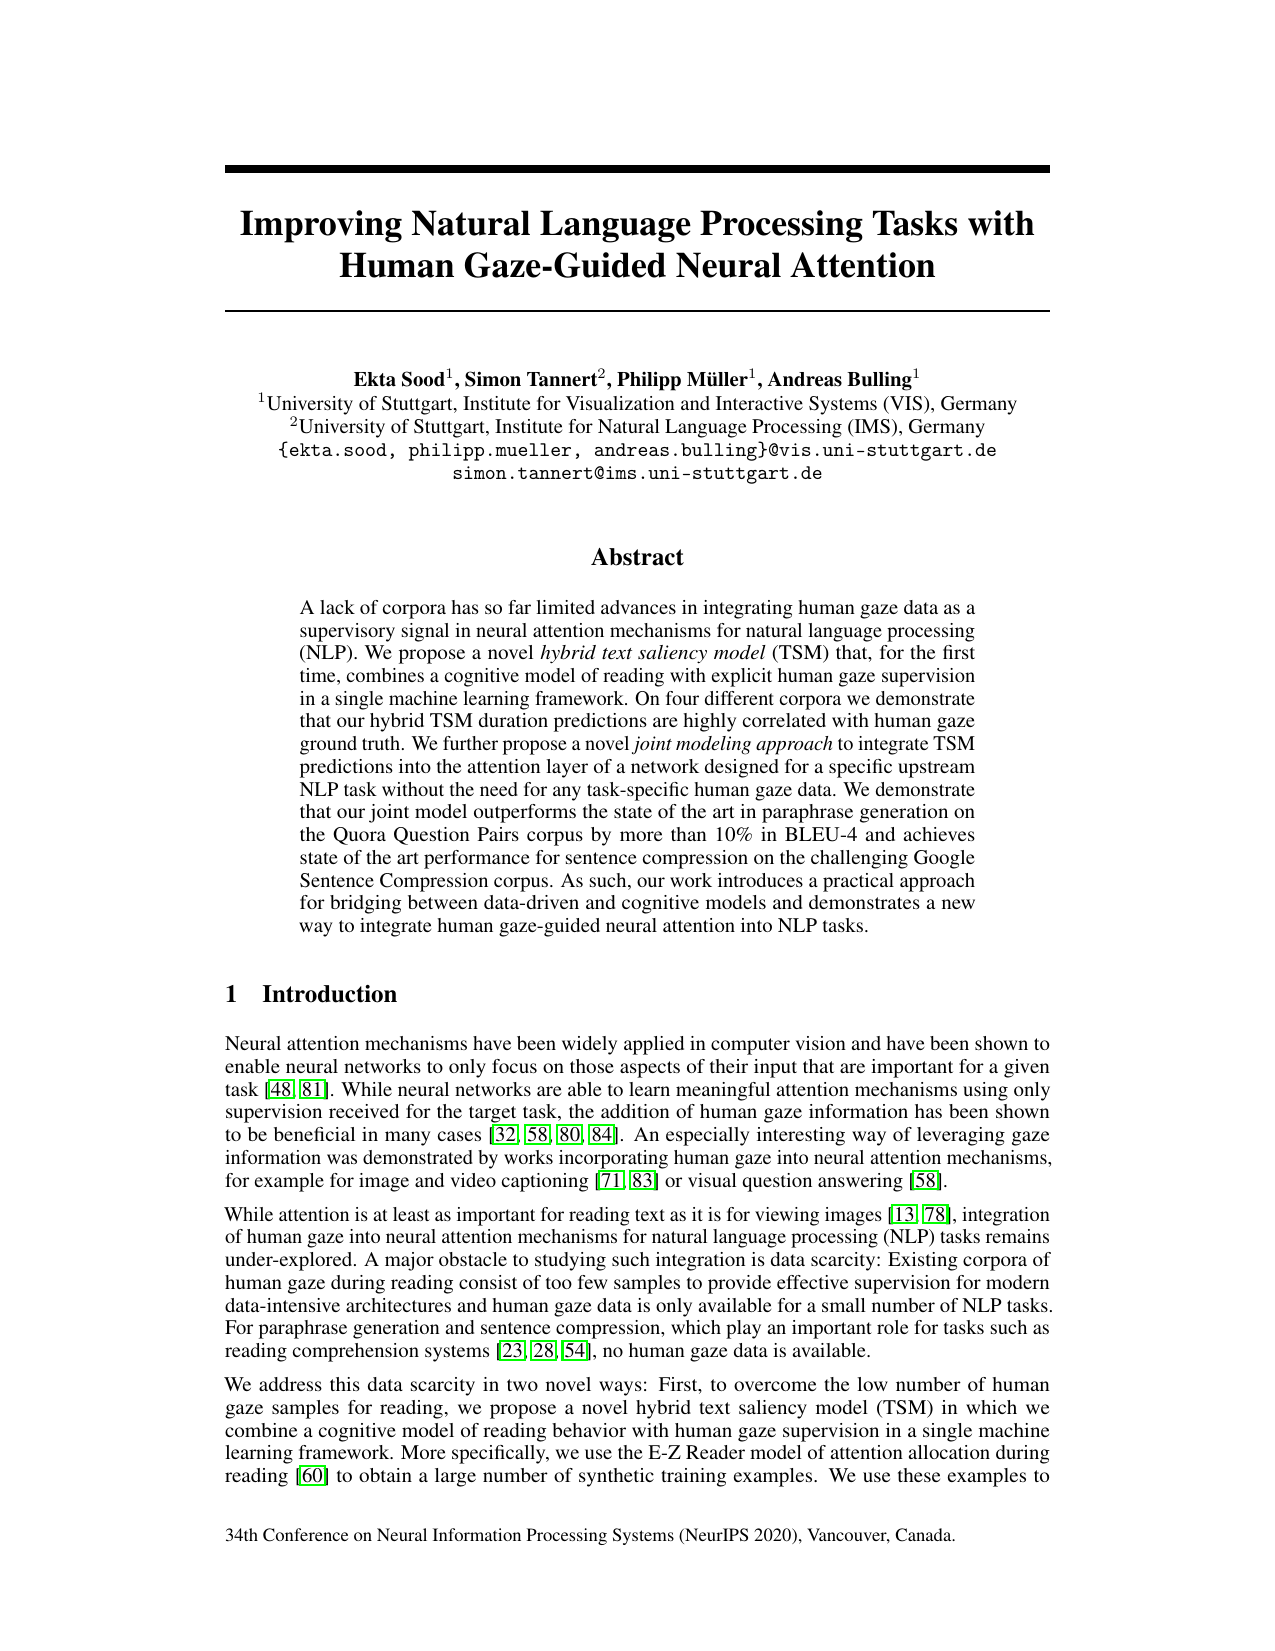 Improving Natural Language Processing Tasks with Human Gaze-Guided Neural Attention